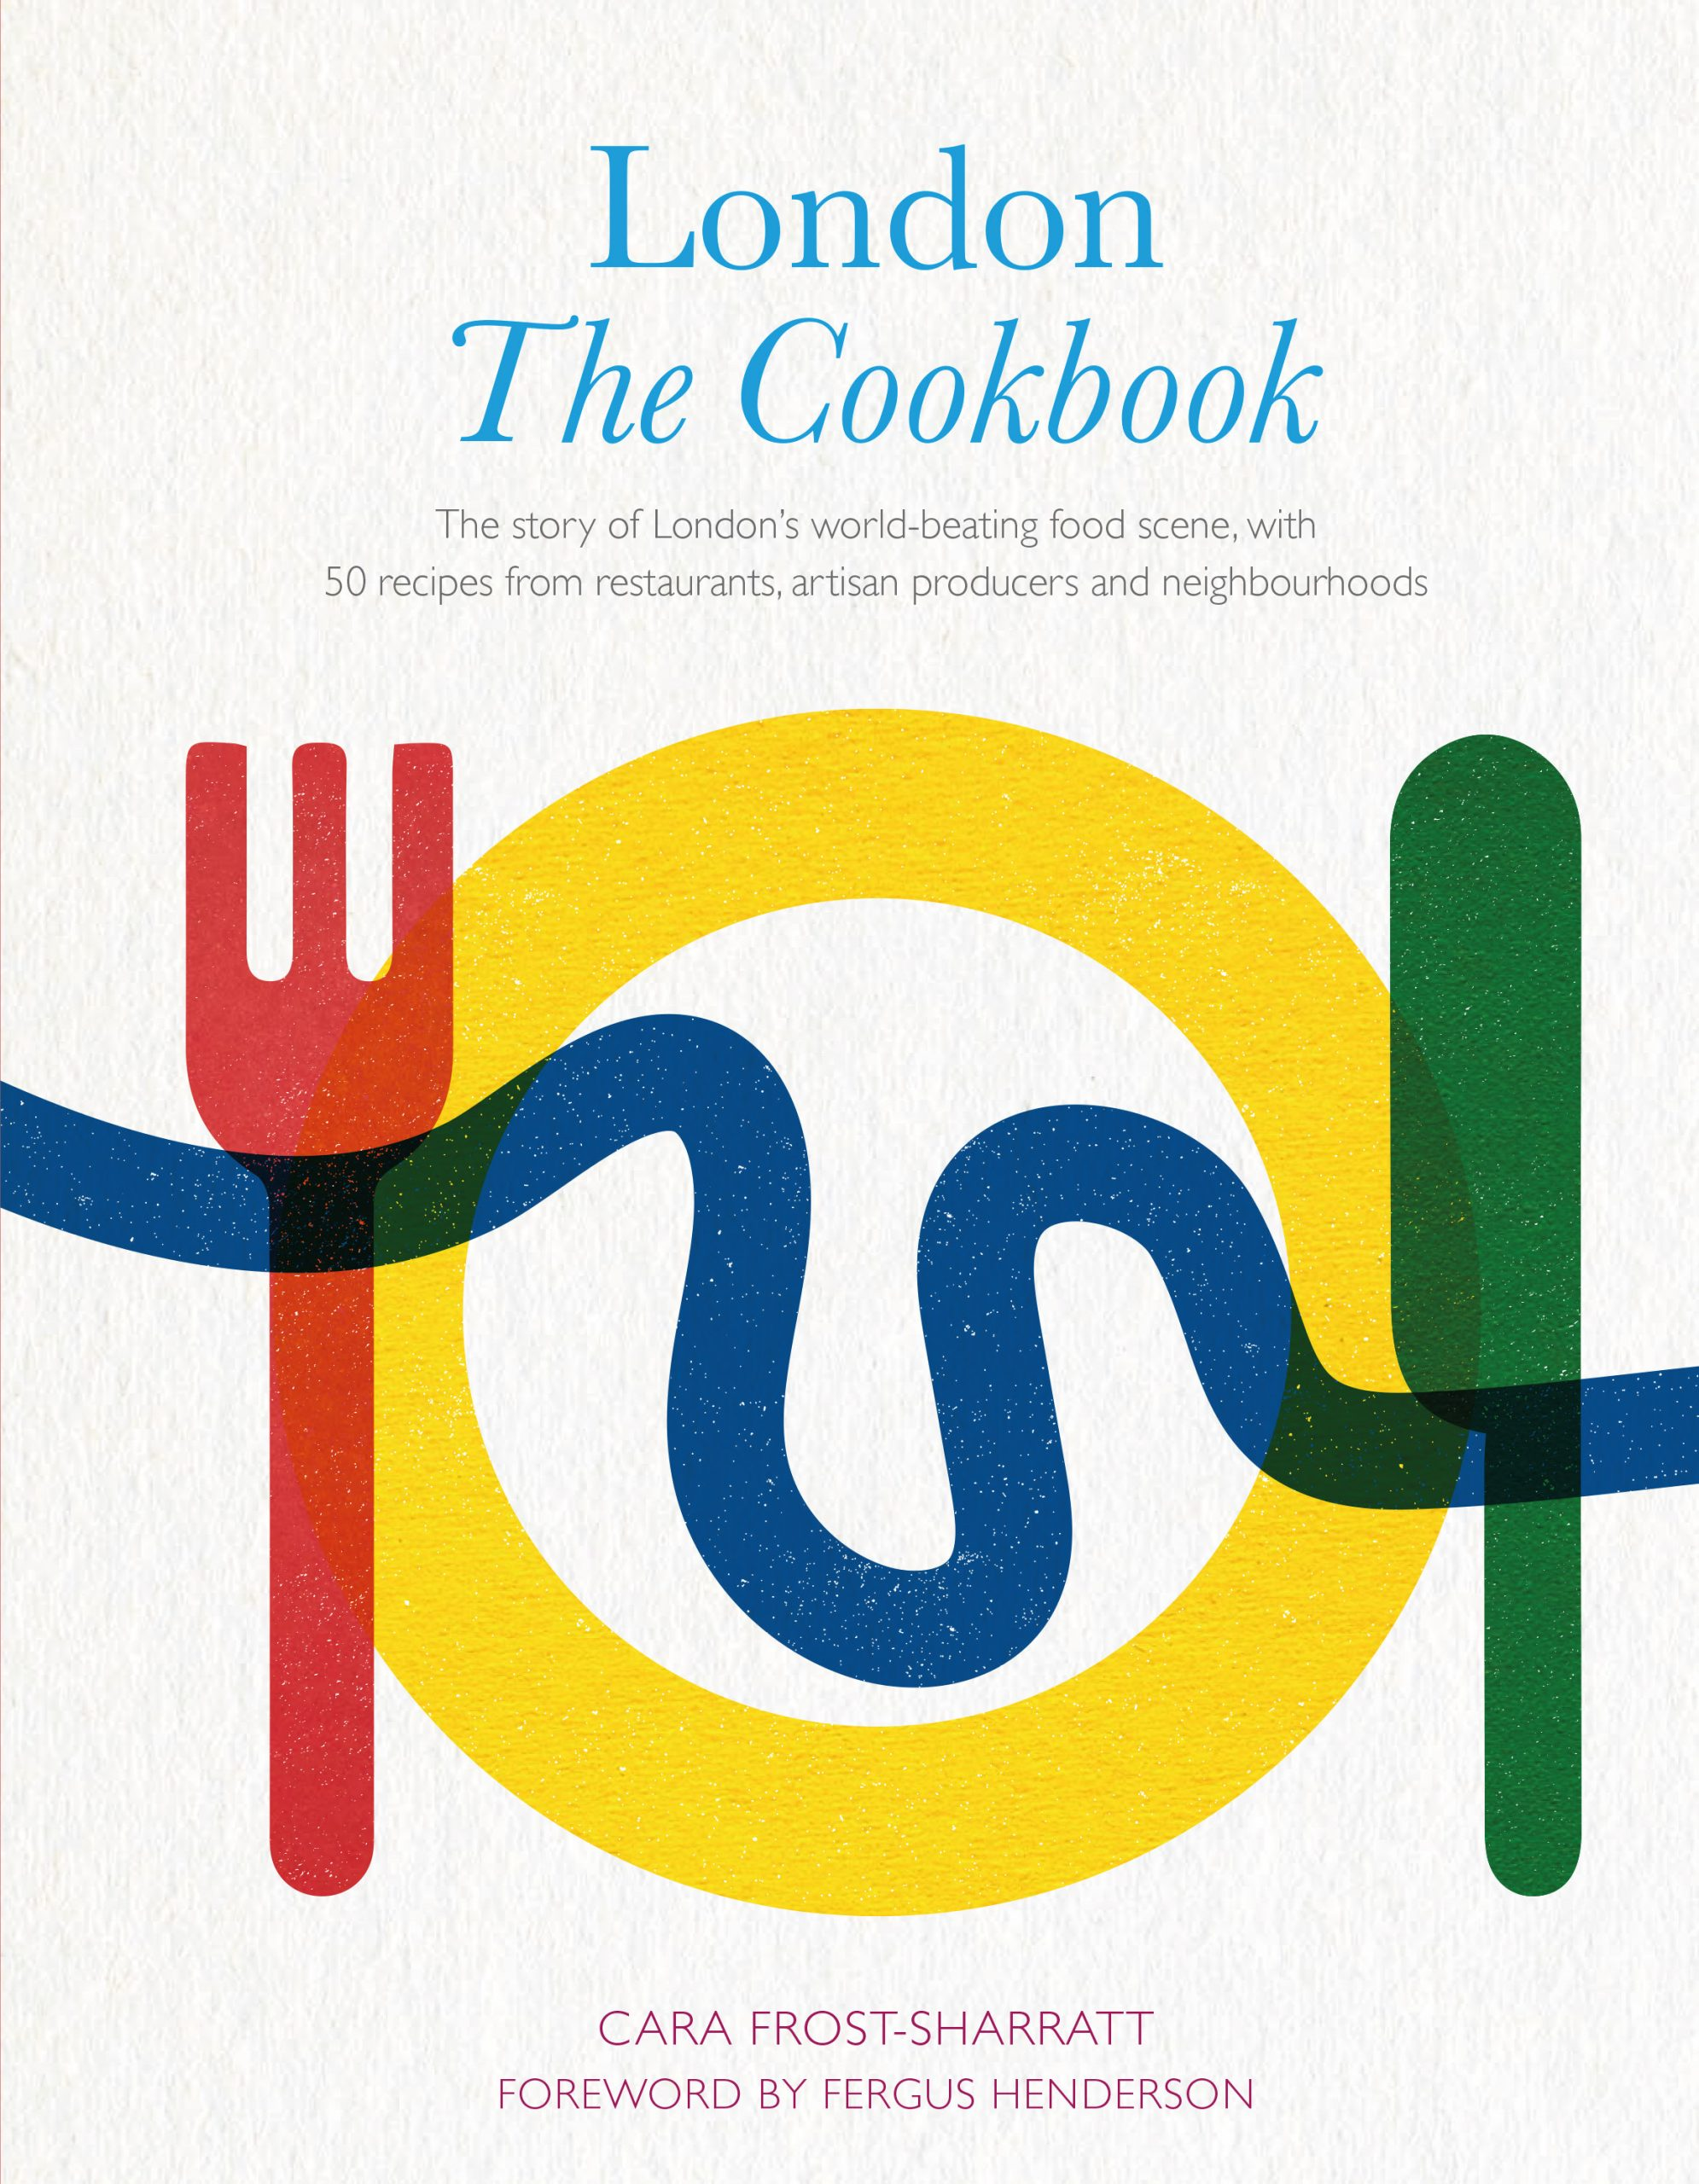 London: The Cookbook, Review.